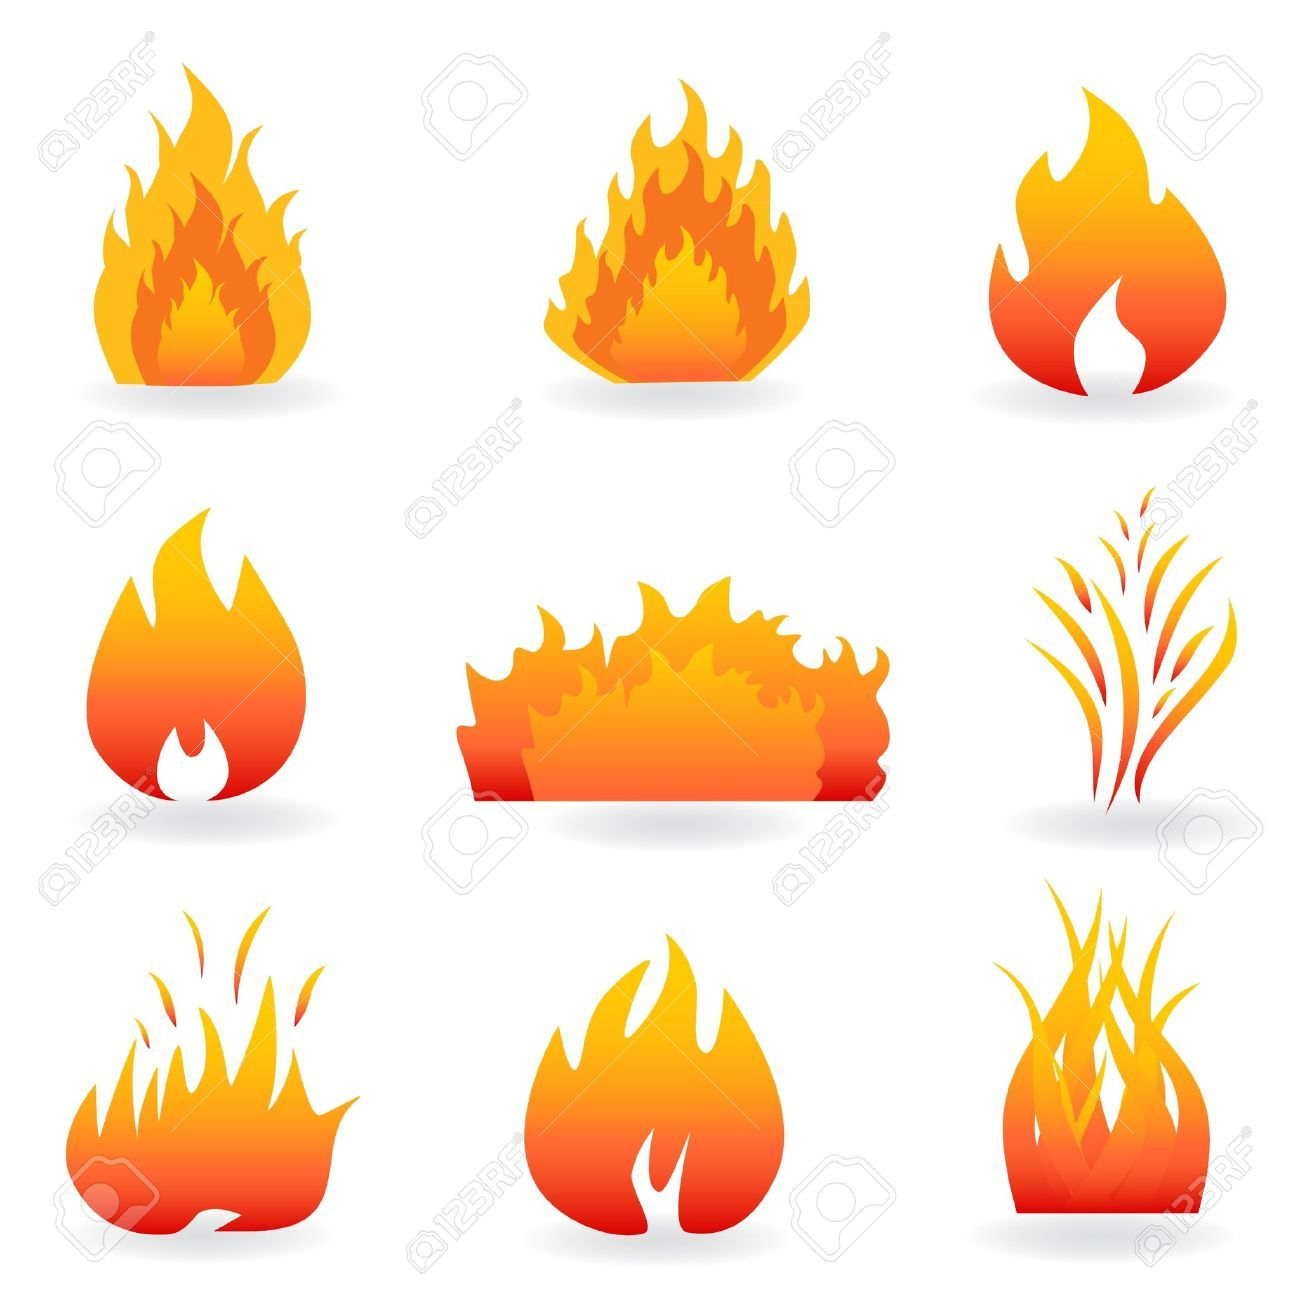 Image result for fire symbols from avatar whole earth wire image result for fire symbols from avatar buycottarizona